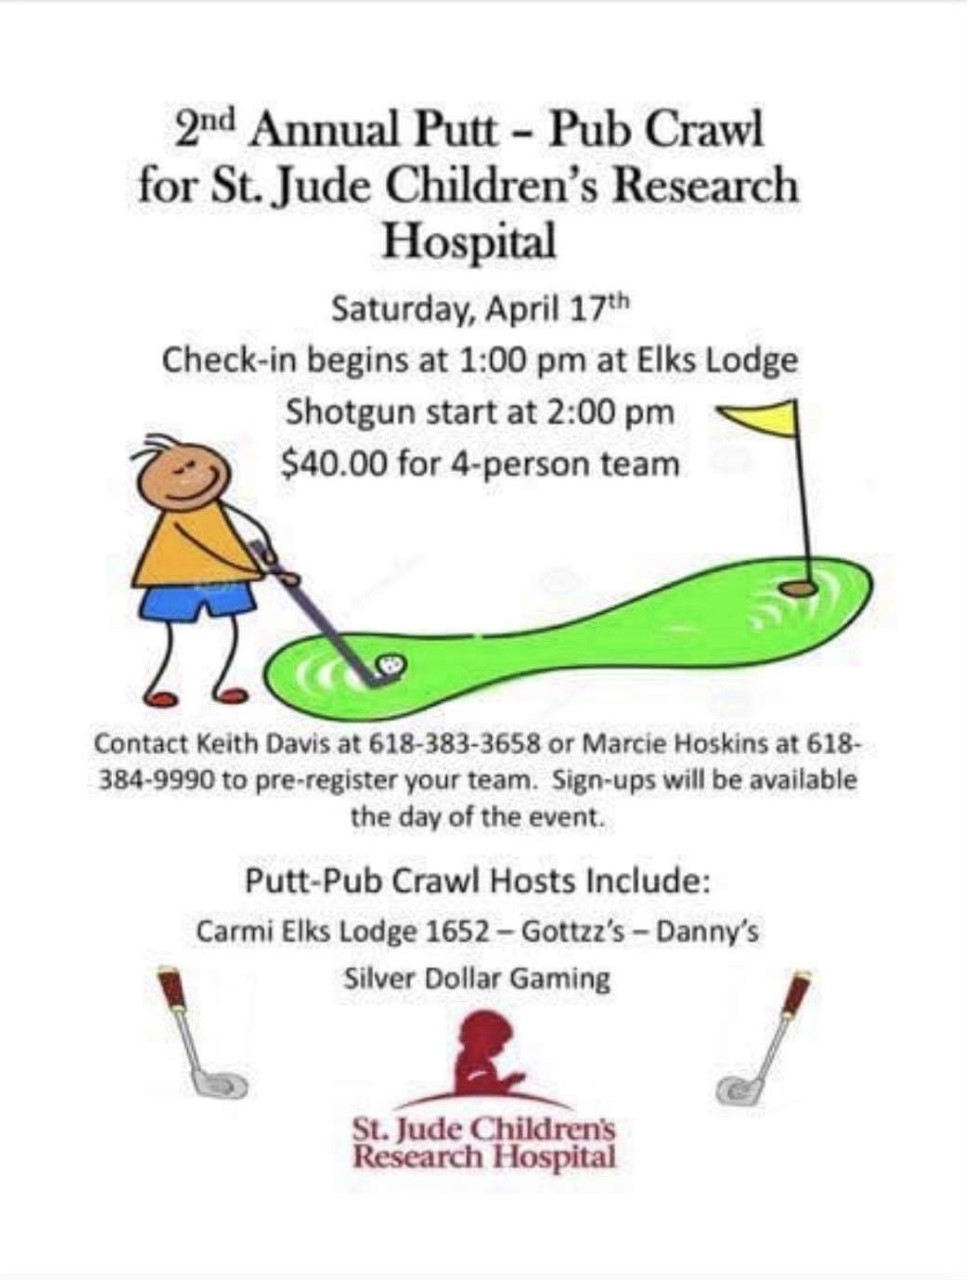 2nd Annual Putt-Pub Crawl for St. Jude Coming Up; Sign Up Now